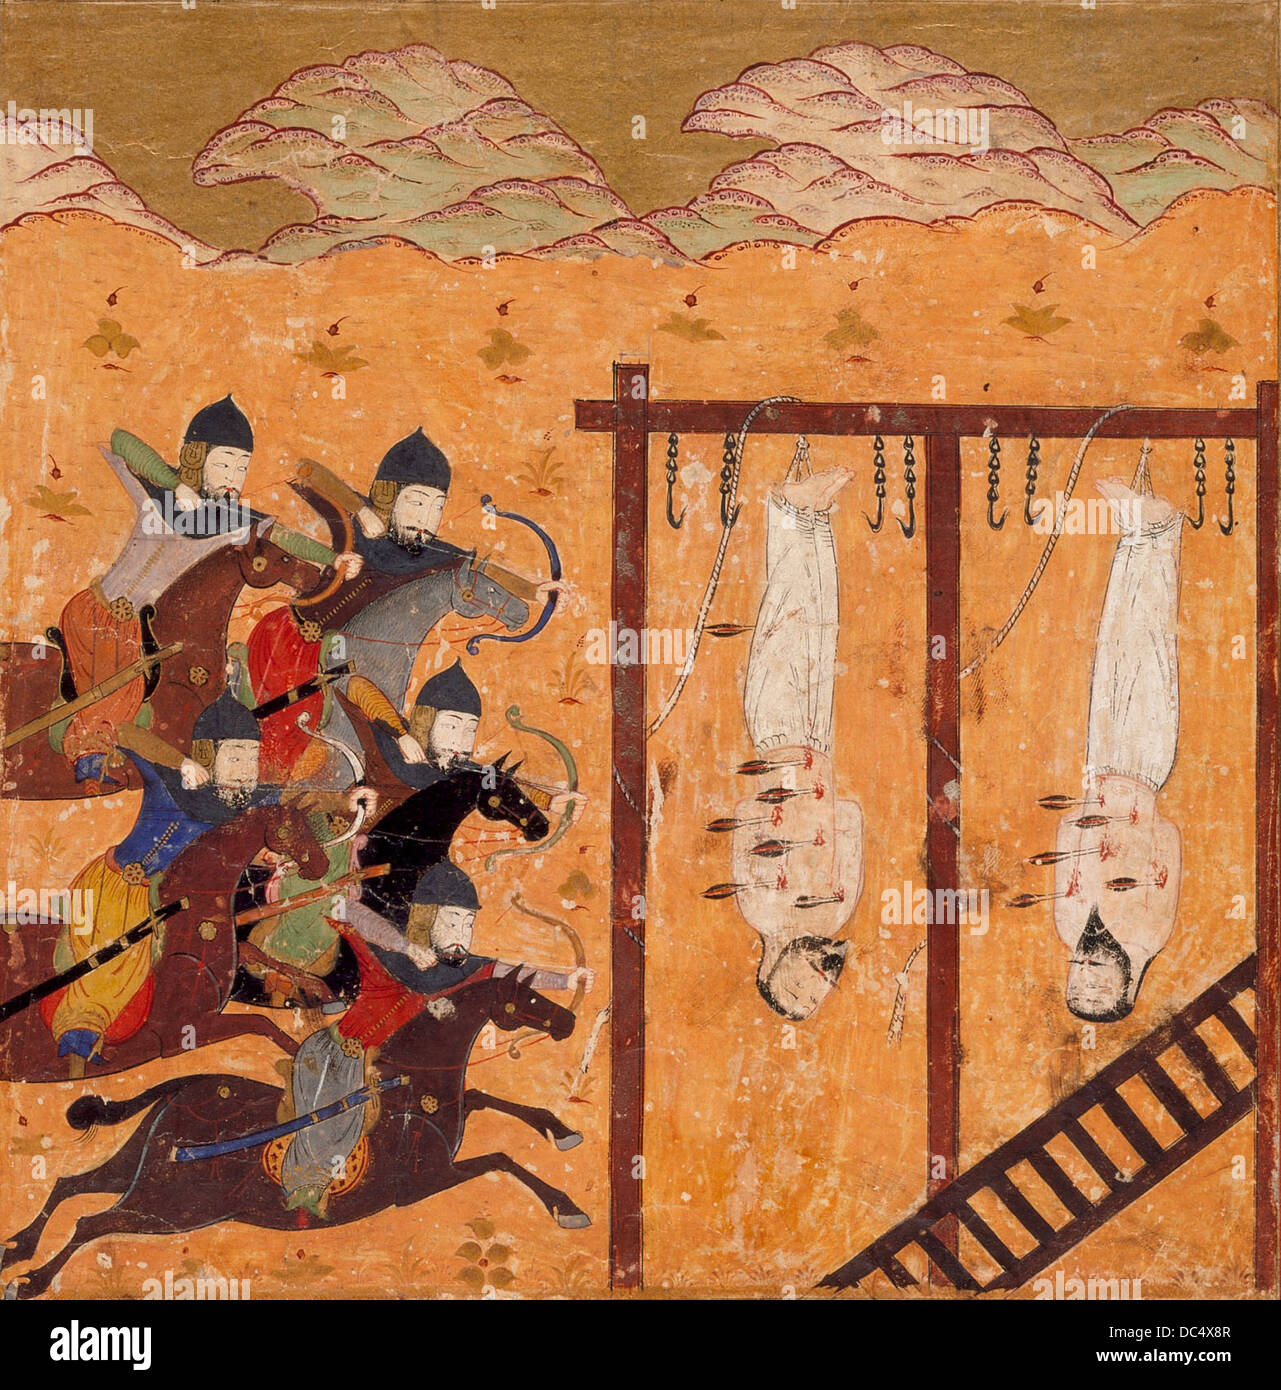 Execution Scene, Folio from a Shahnama (Book of Kings) M.85.189 - Stock Image